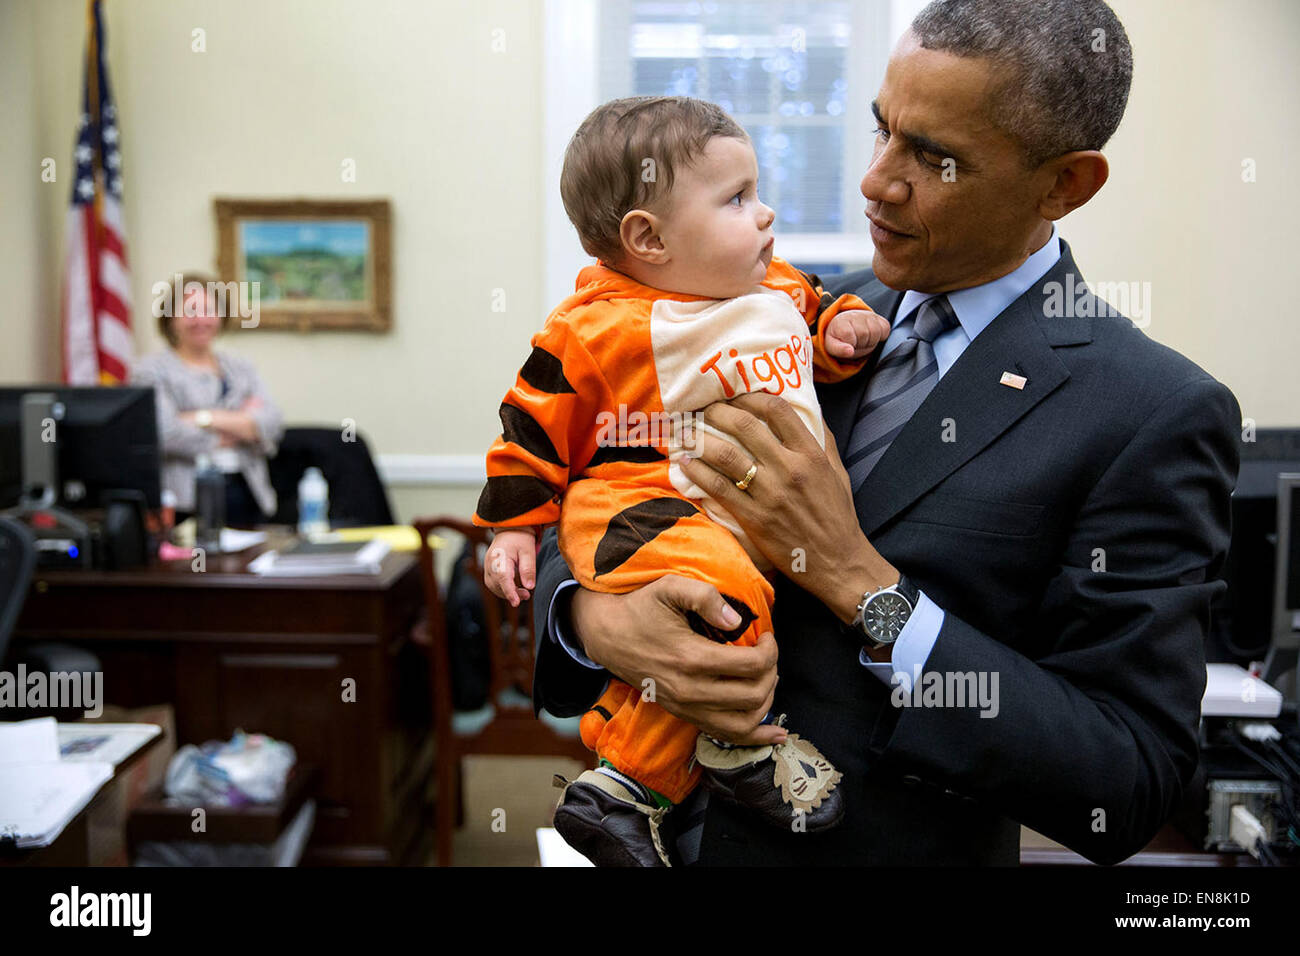 President Barack Obama stops by the Chief of Staff's office in the West Wing of the White House to visit with children Stock Photo